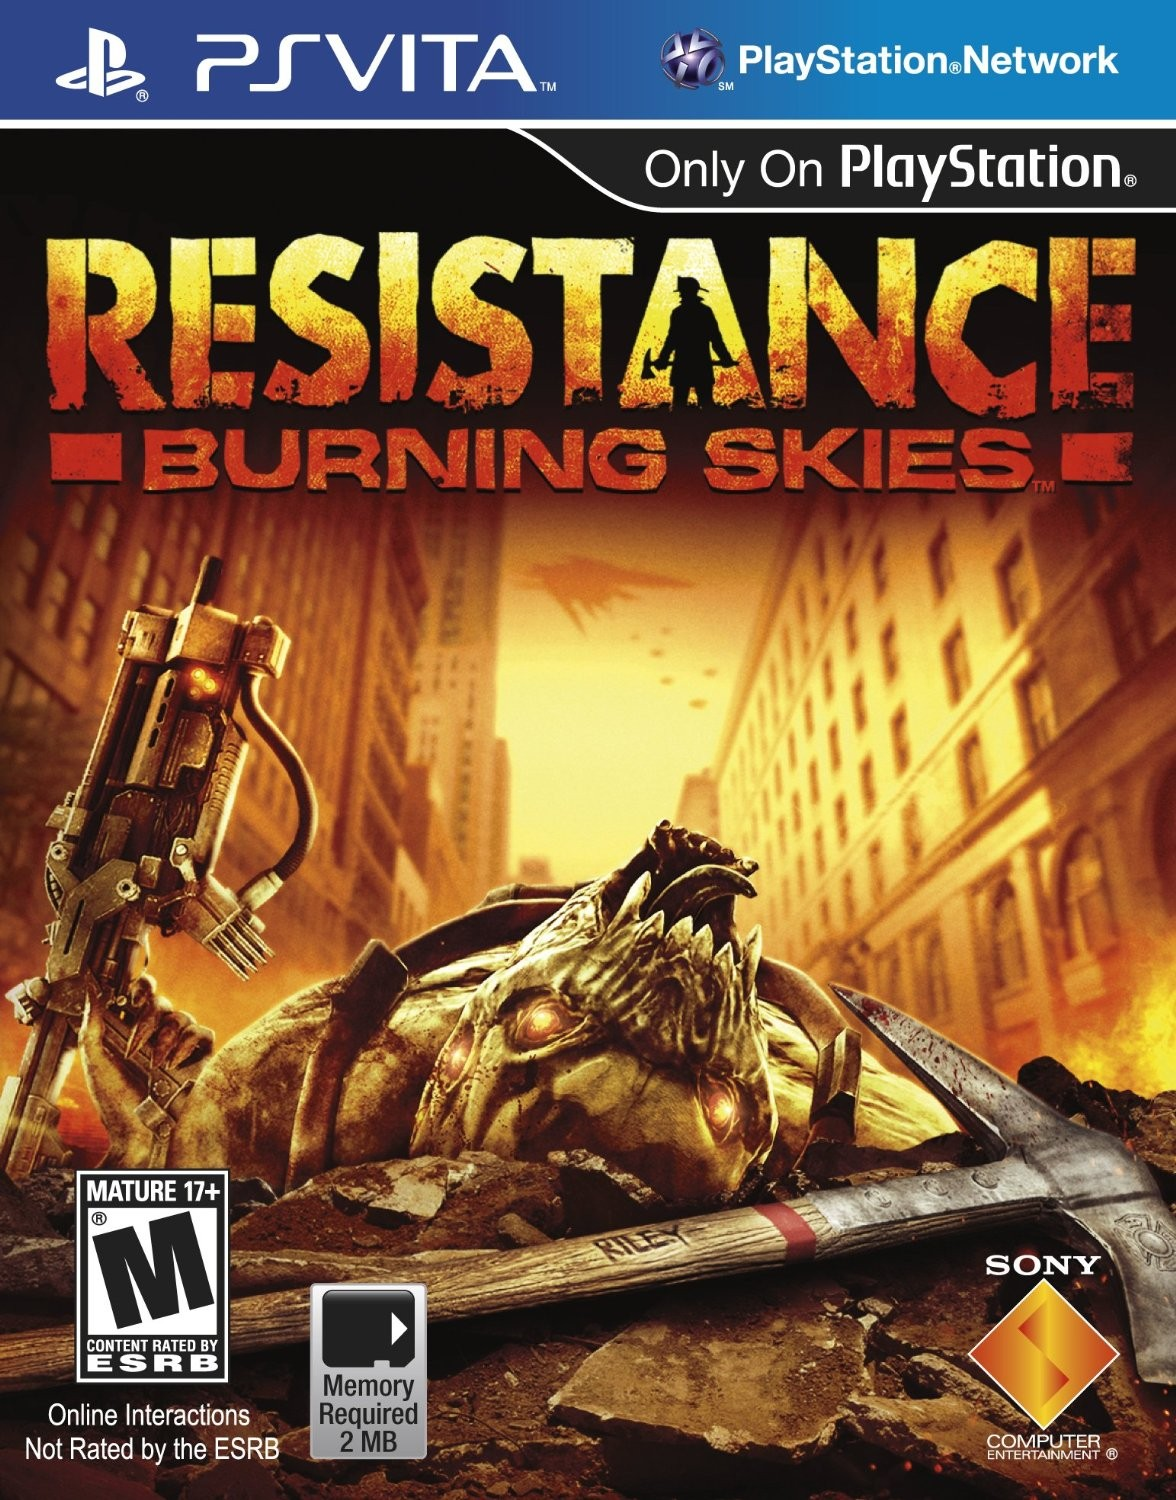 Resistance: Burning Skies 抵抗:燃烧苍穹